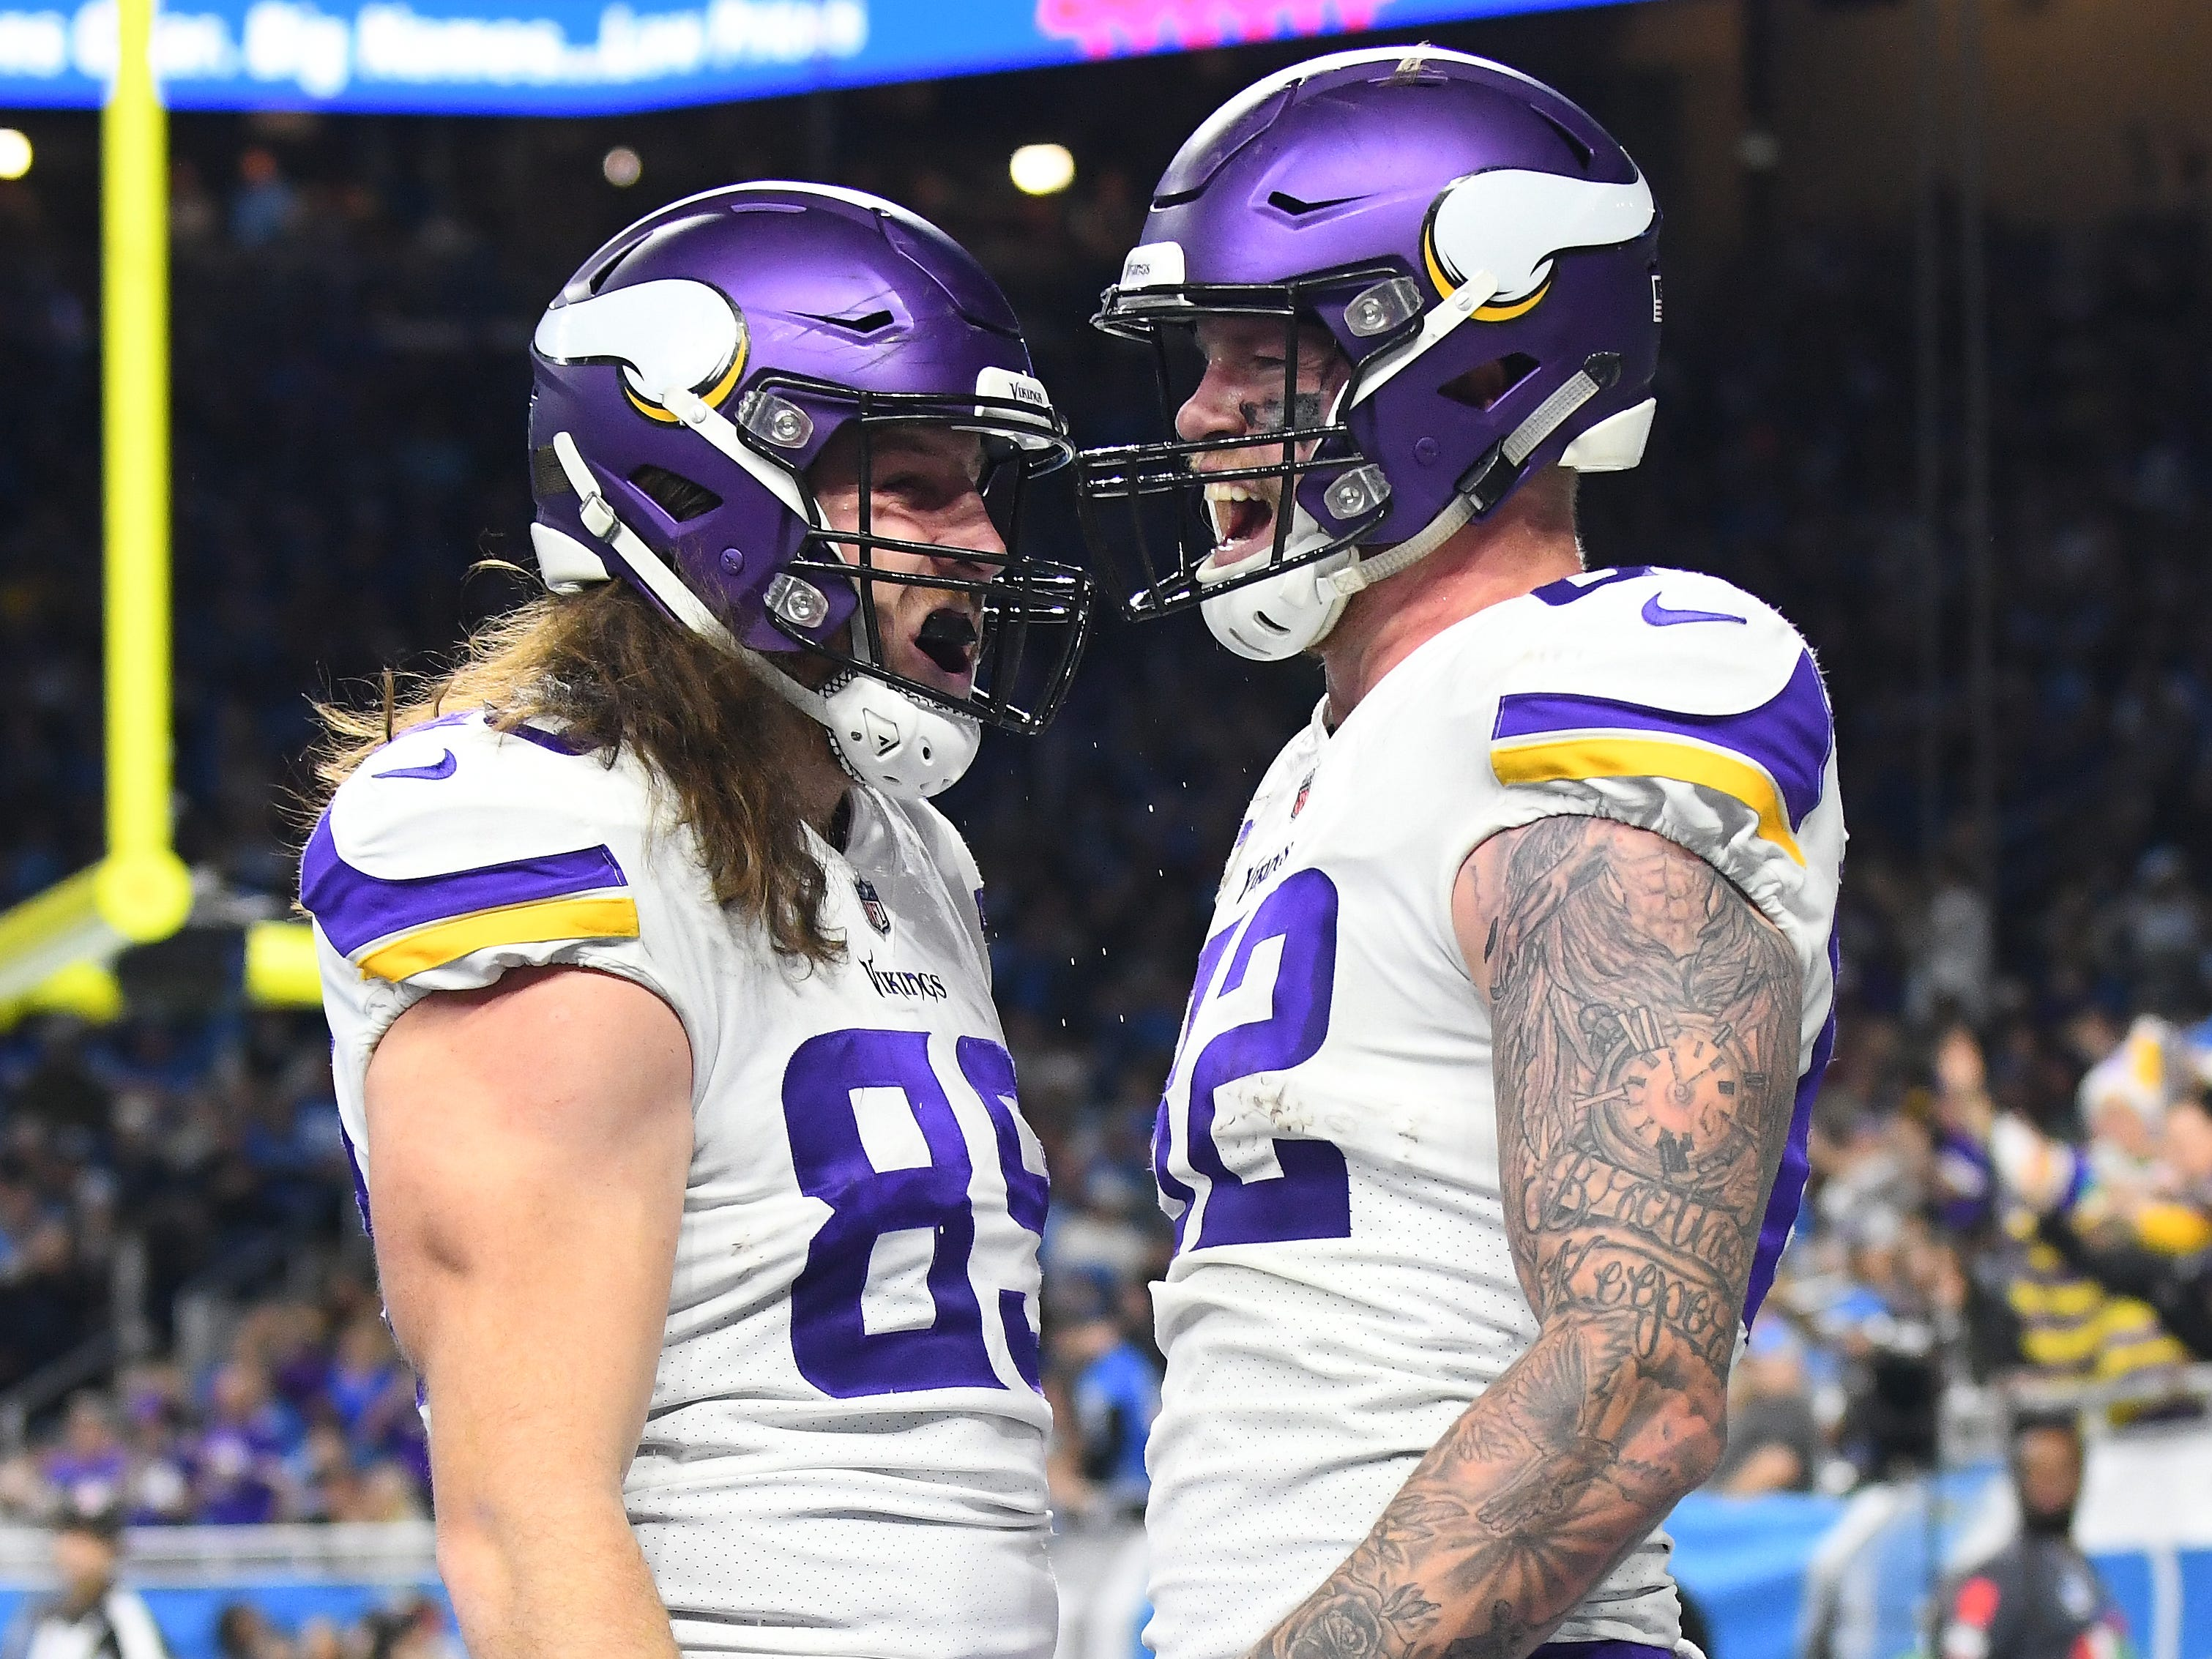 Vikings tight ends David Morgan and Kyle Rudolph let out a yell after Rudolphs touchdown in the fourth quarter.